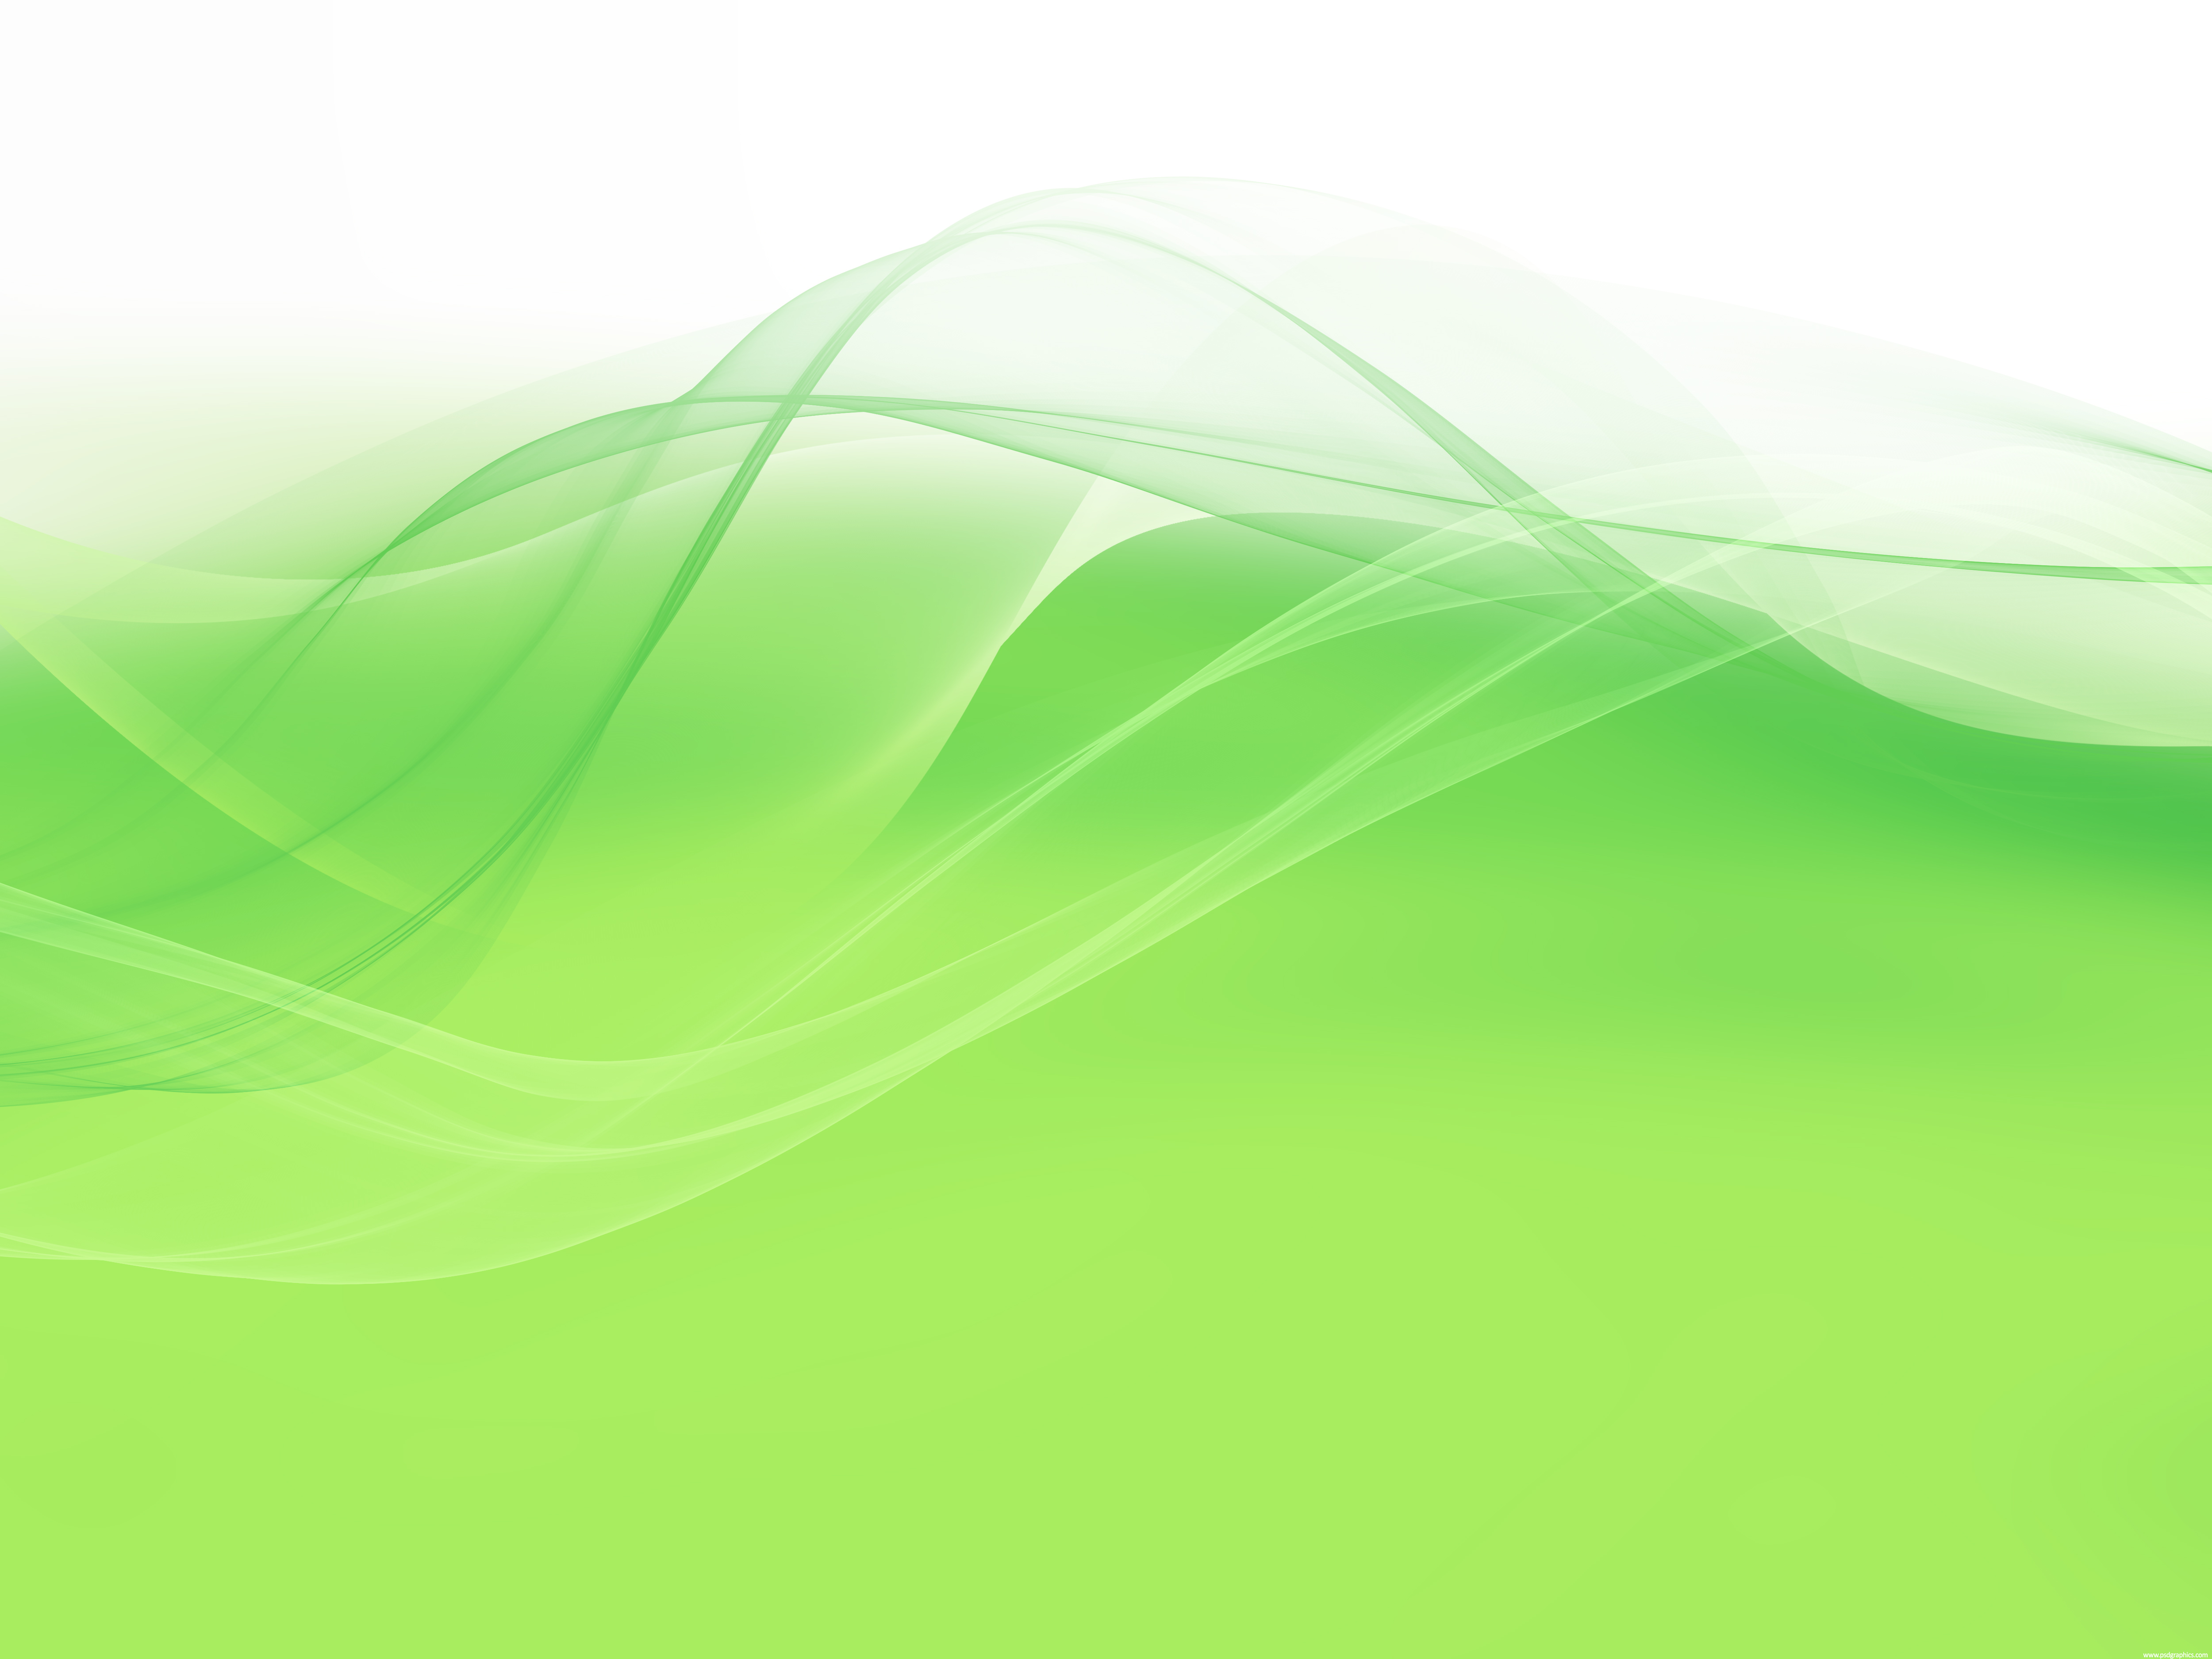 Green Background Design Wallpaper Soft green wavy...